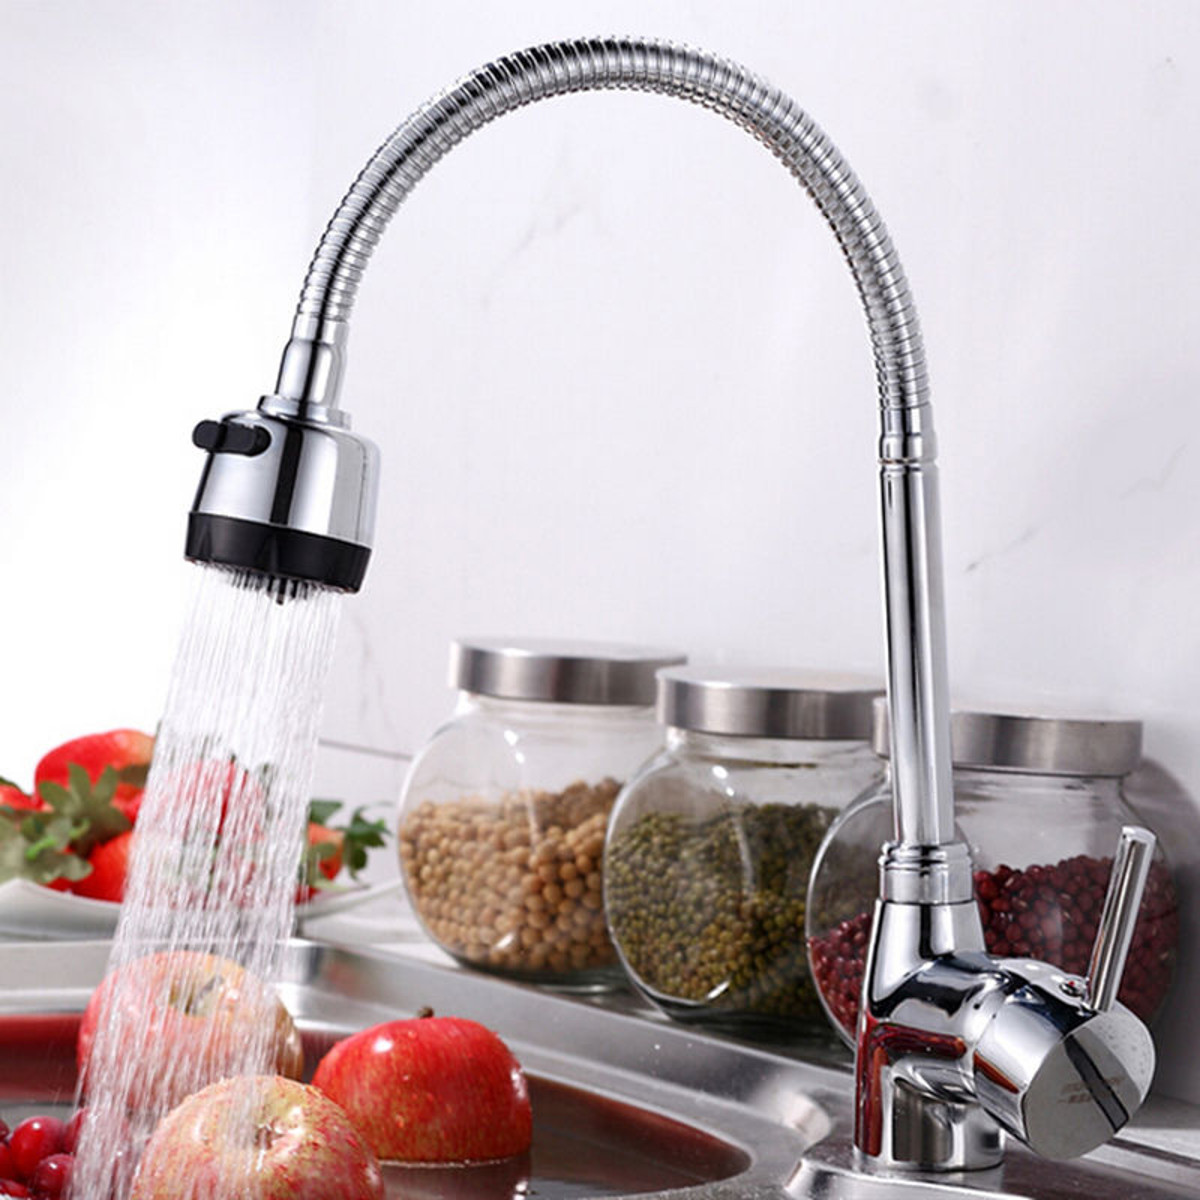 Kitchen Solid Brass 360Rotatable Pull Out Spray Basin Faucet Mixer Tap Spout Single Handle Sink Adjustable Spout Deck Mounted